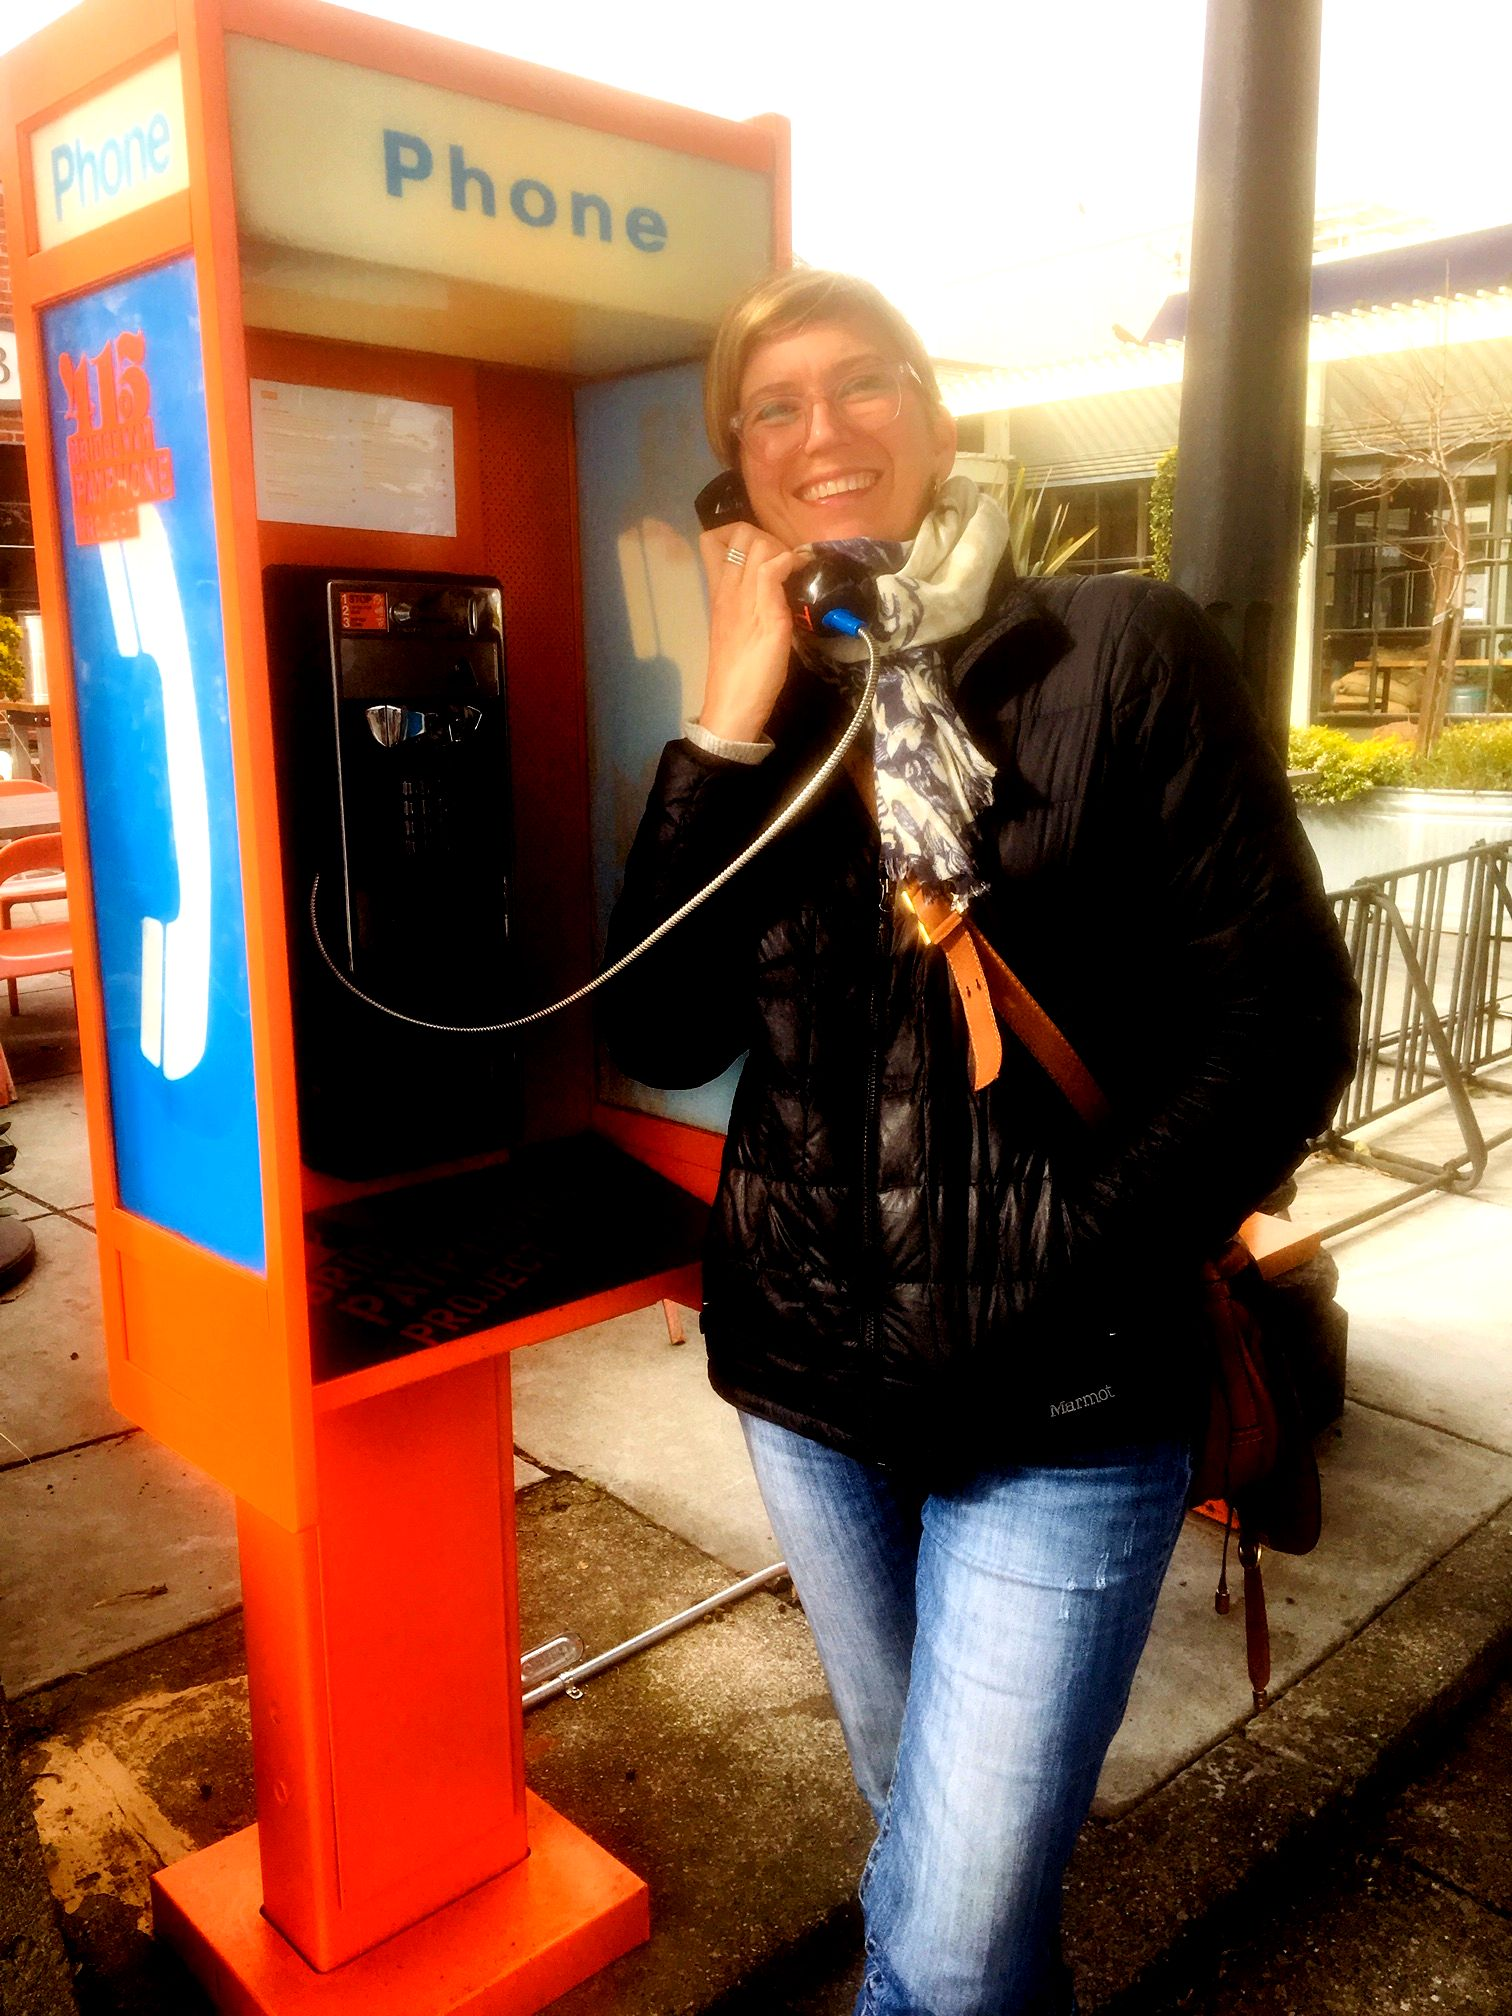 Tera Ancona checks out the payphone recordings outside Cibo.                       Photo by Larry Clinton